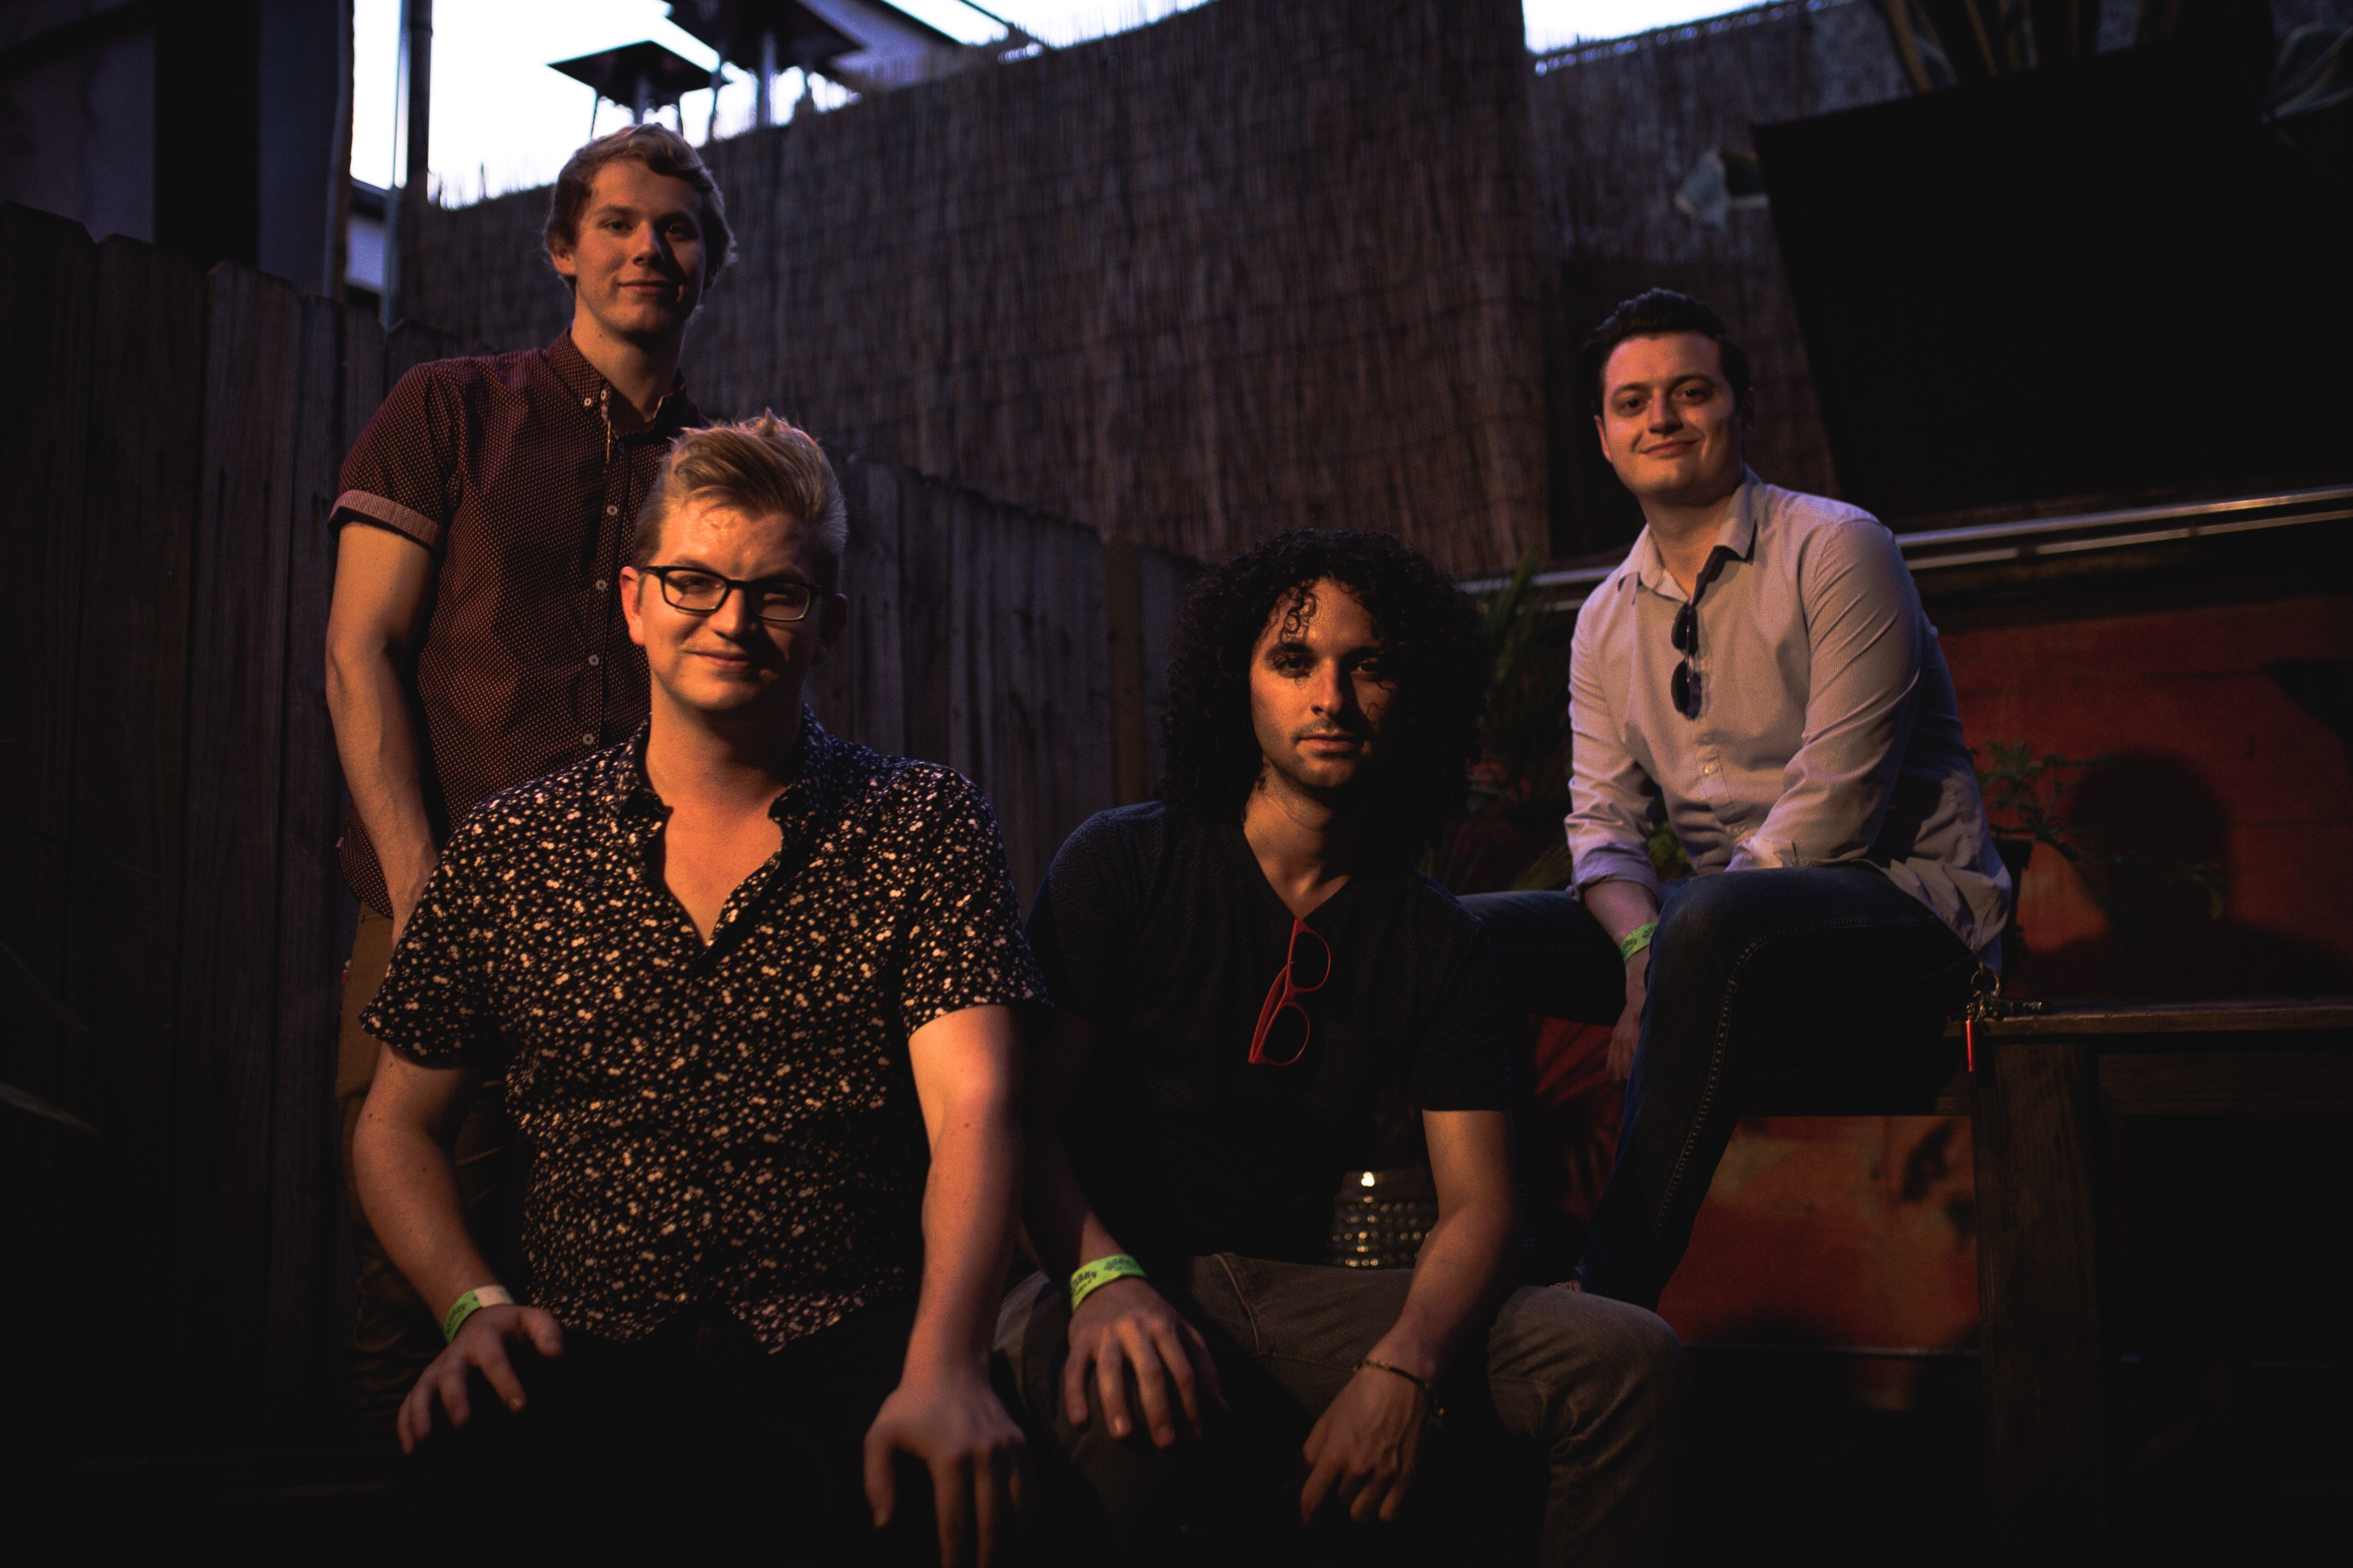 INTERVIEW WITH AUSTIN INDIE ROCK BAND MOHAWK BENDS